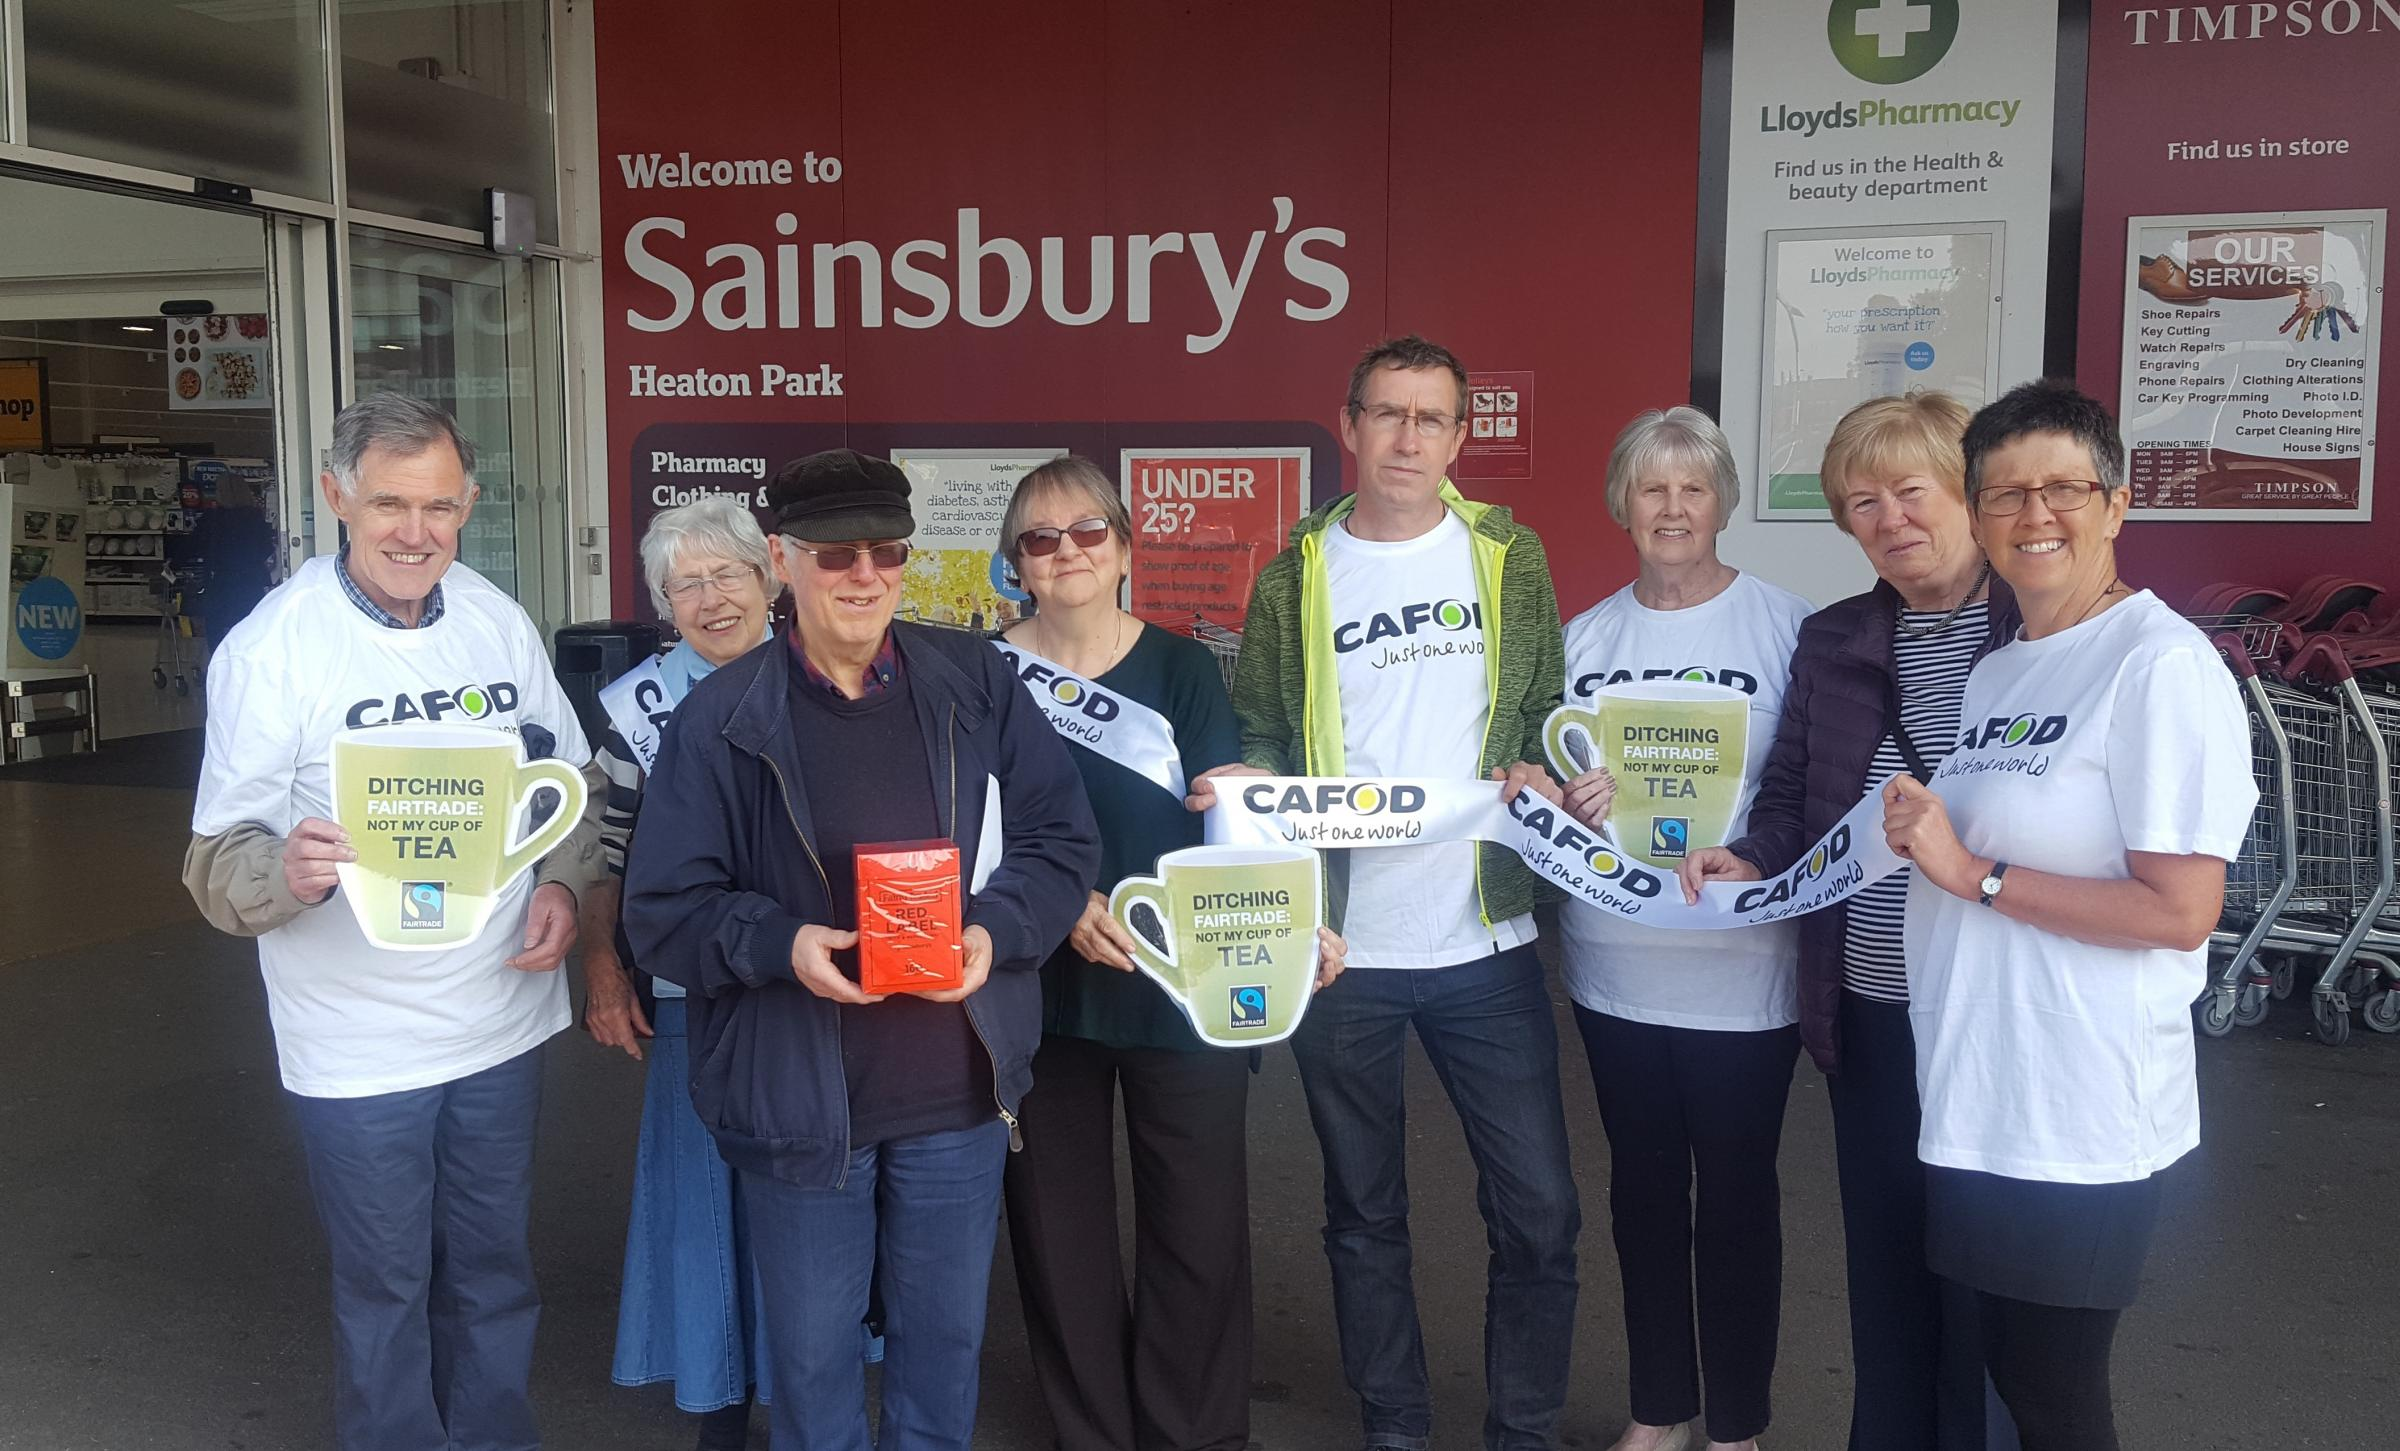 Vin and Sue Allerton with CAFOD volunteers delevering a petition to Sainsbury's